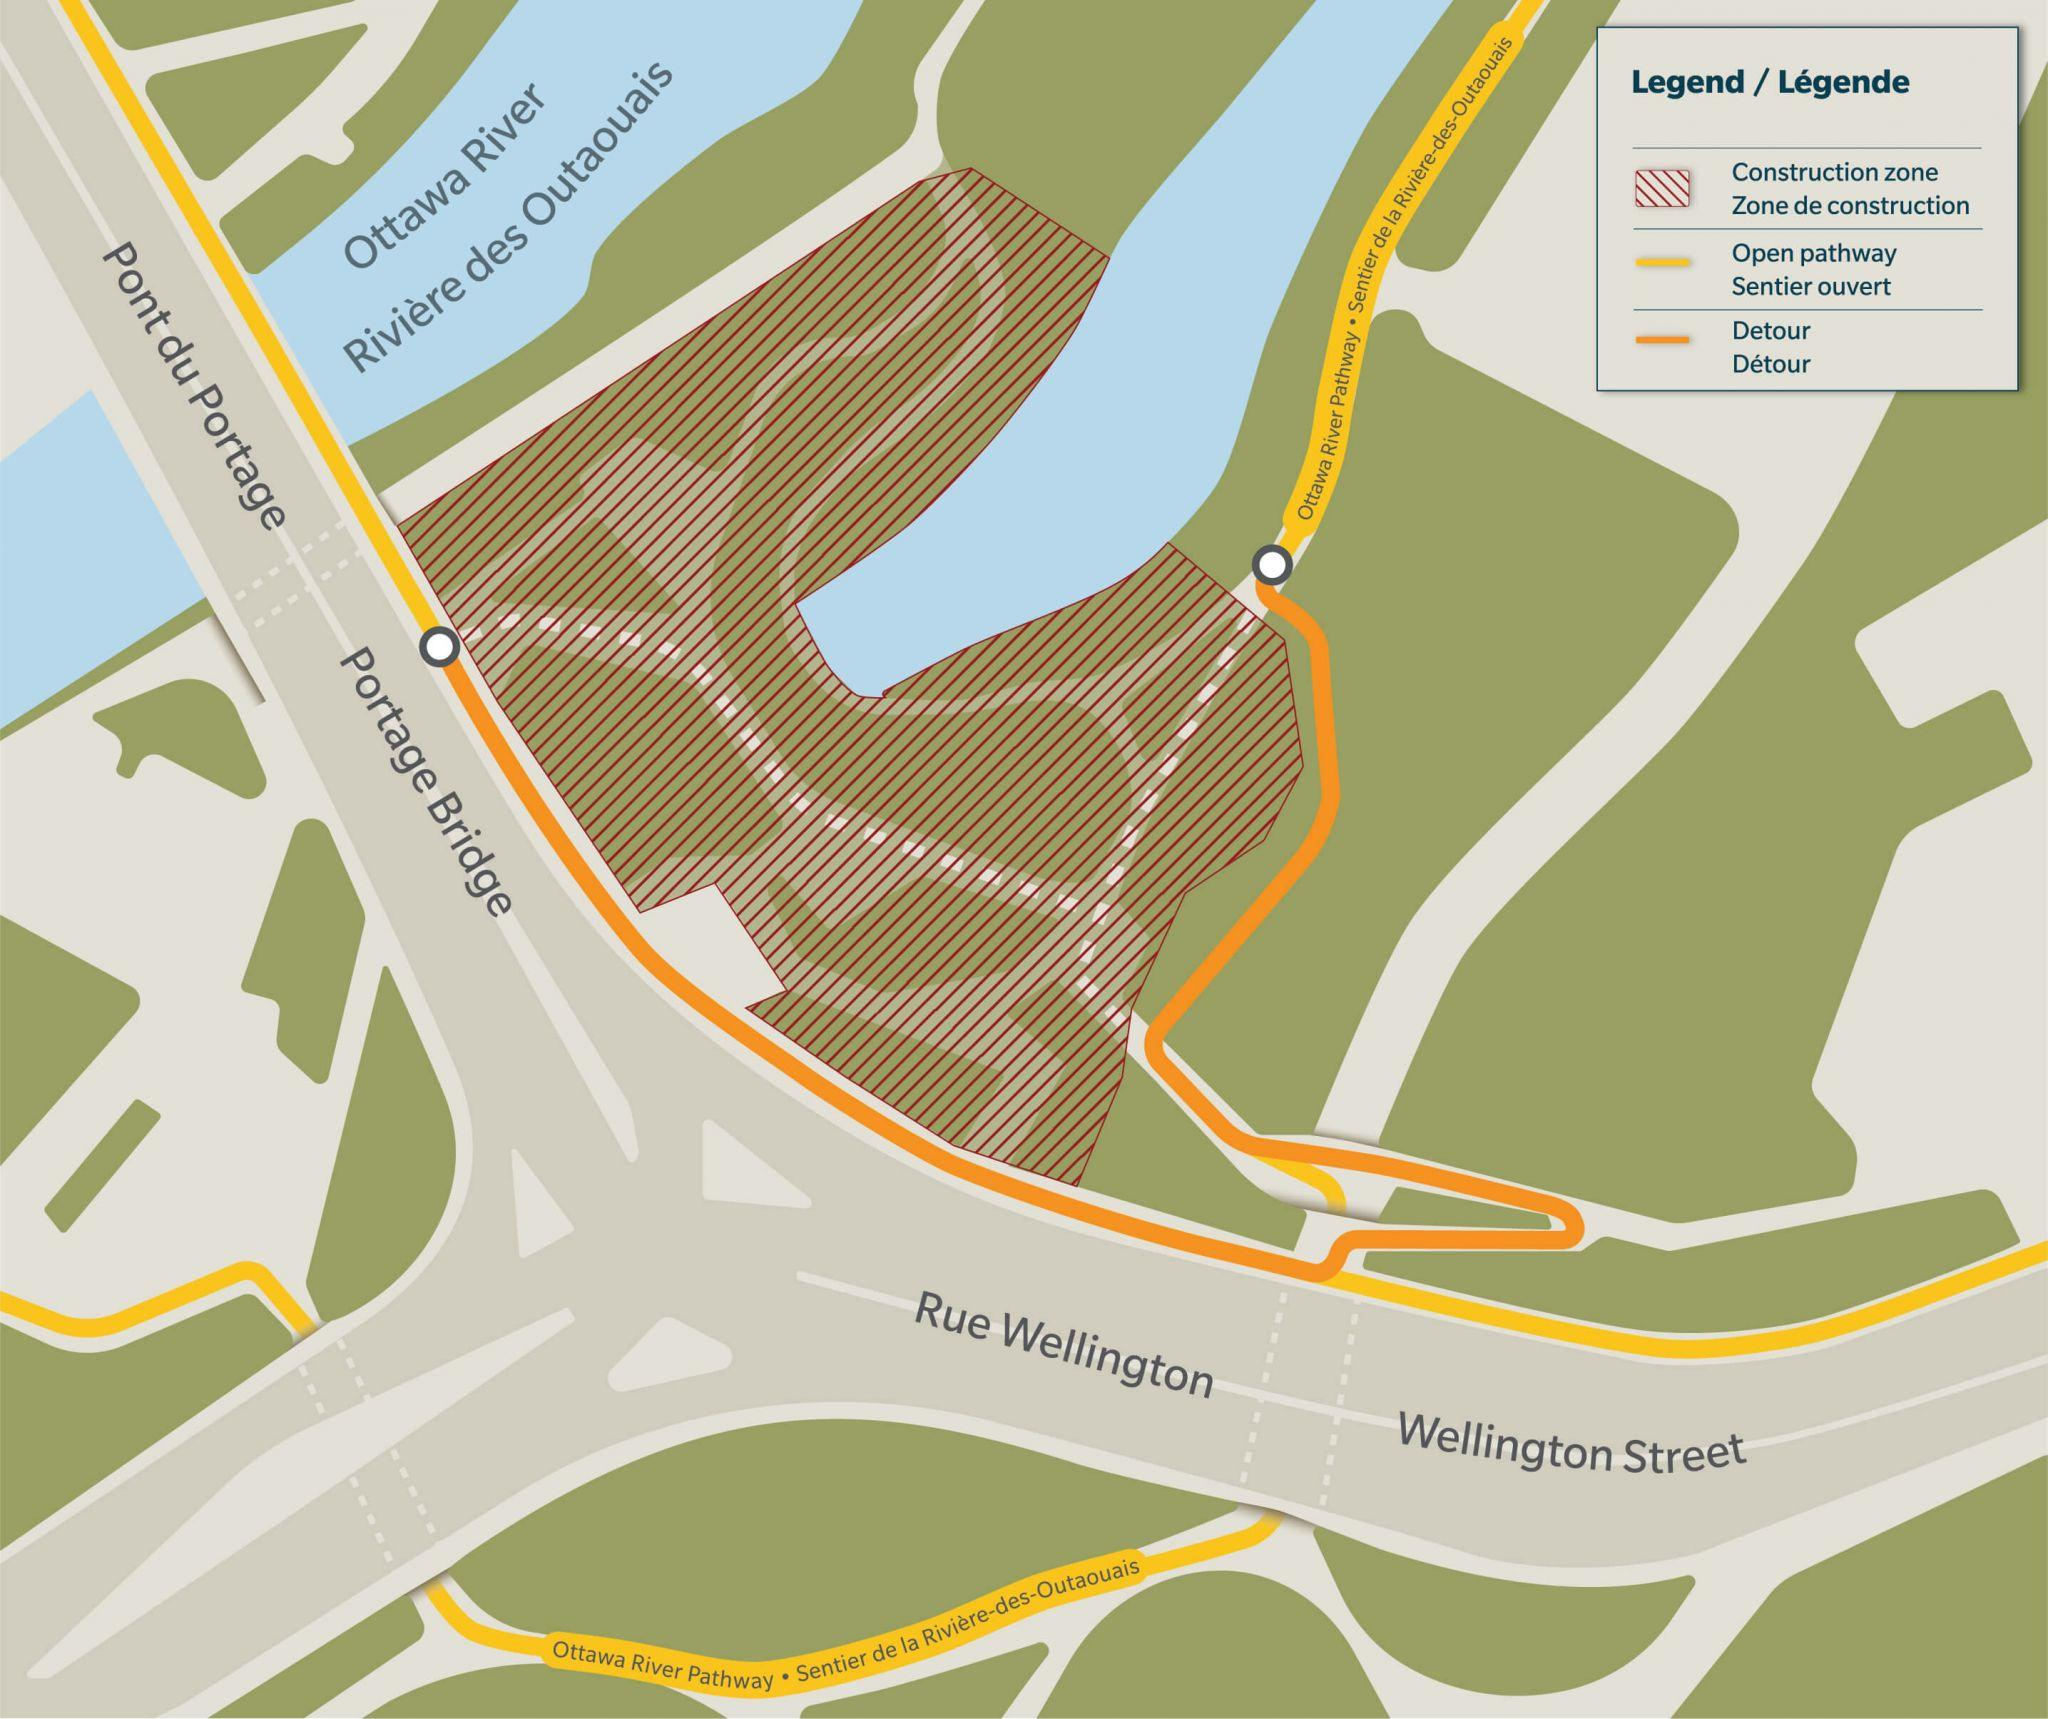 Map of the detour using the access ramp over the tunnel under Wellington Street.